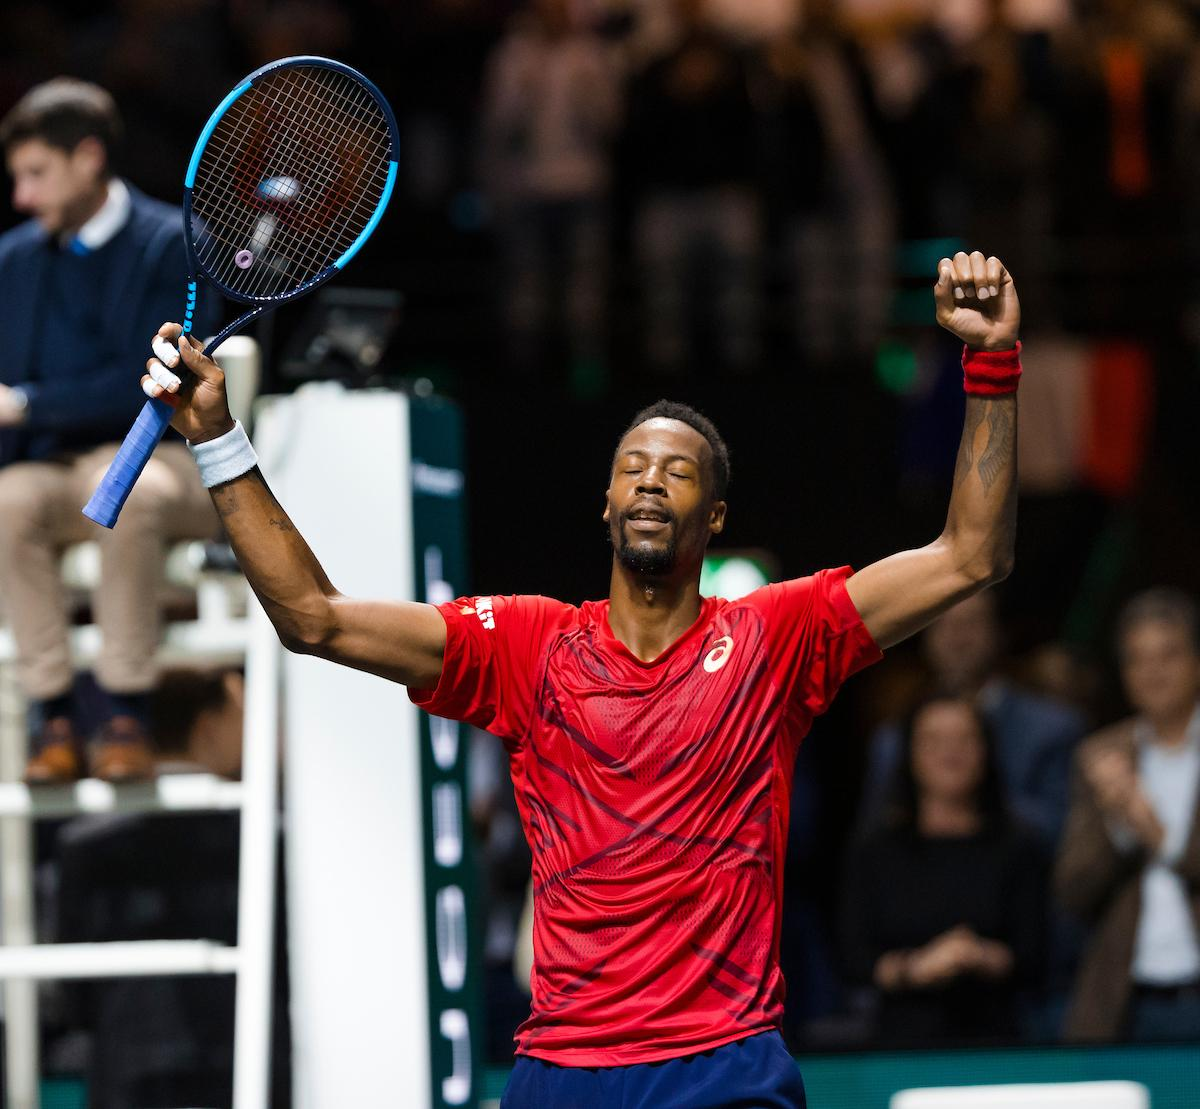 Gaël Monfils wederom winnaar van ABN AMRO World Tennis Tournament